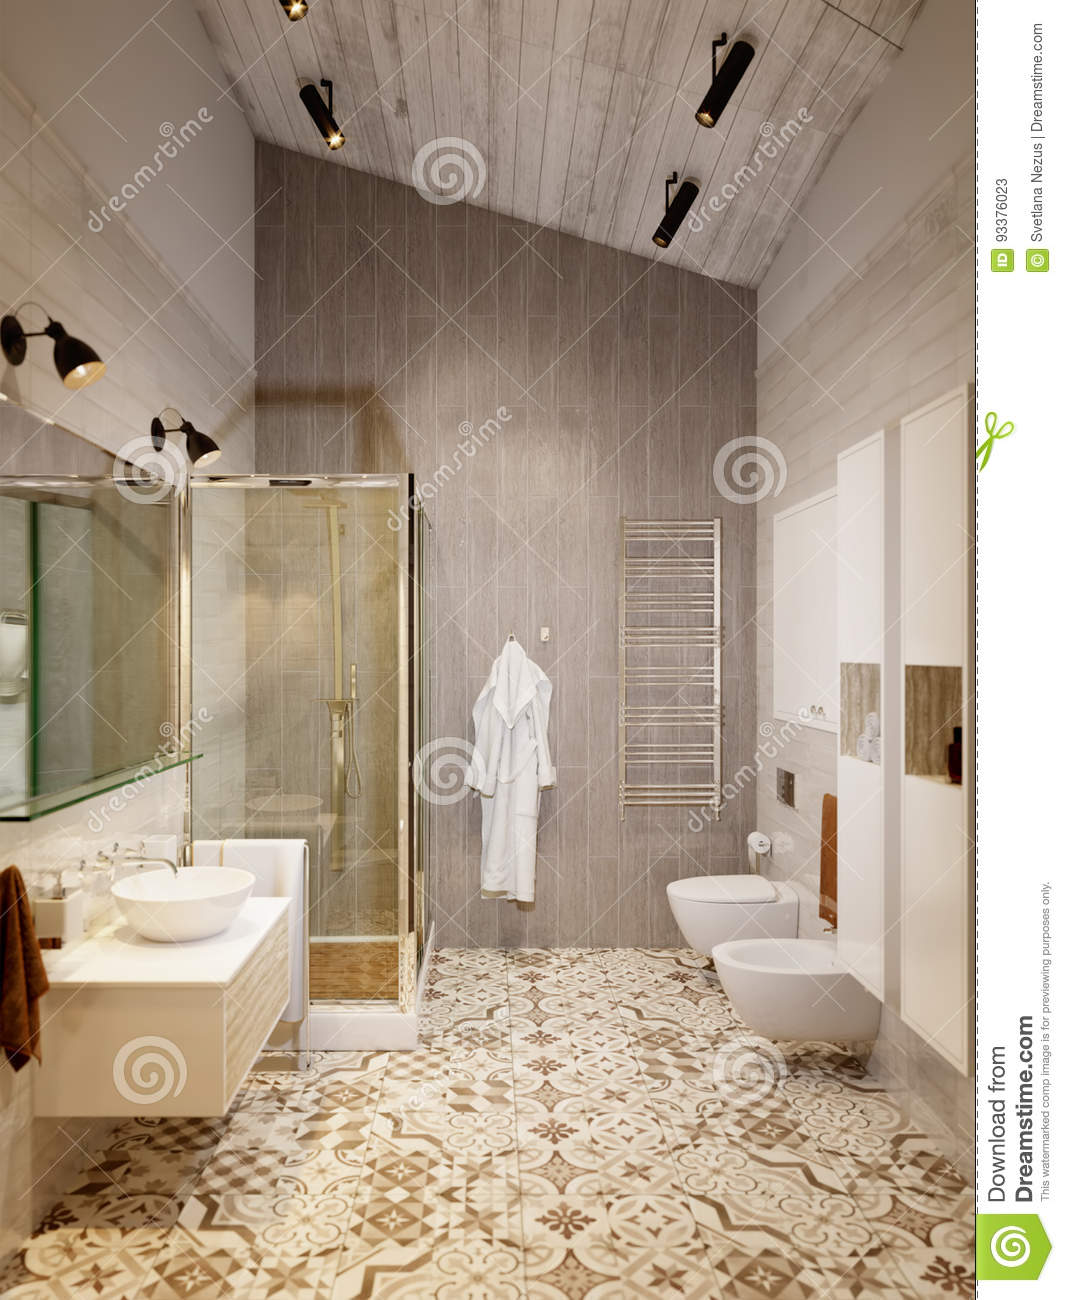 Wc Design rustic provence loft bathroom shower wc room stock illustration